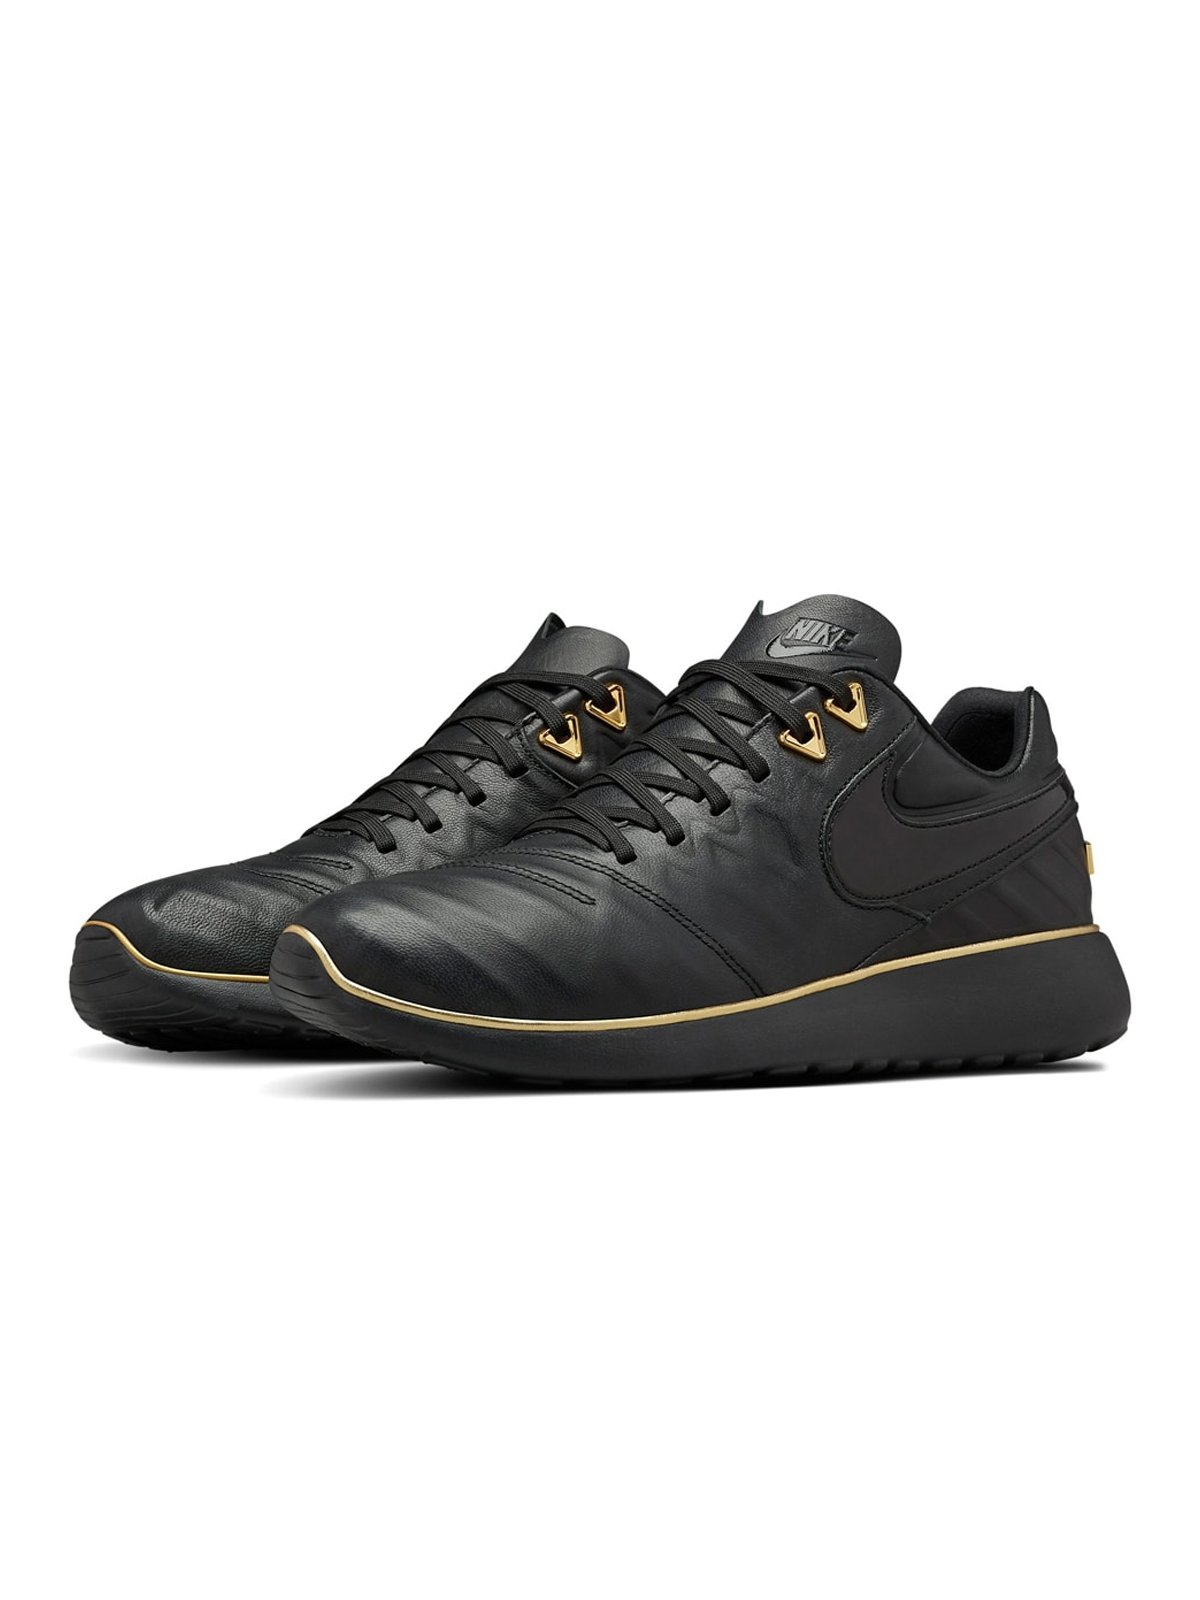 52410375d0f5 Buy Original Nike Nike x Olivier Rousteing Roshe Tiempo VI QS at ...